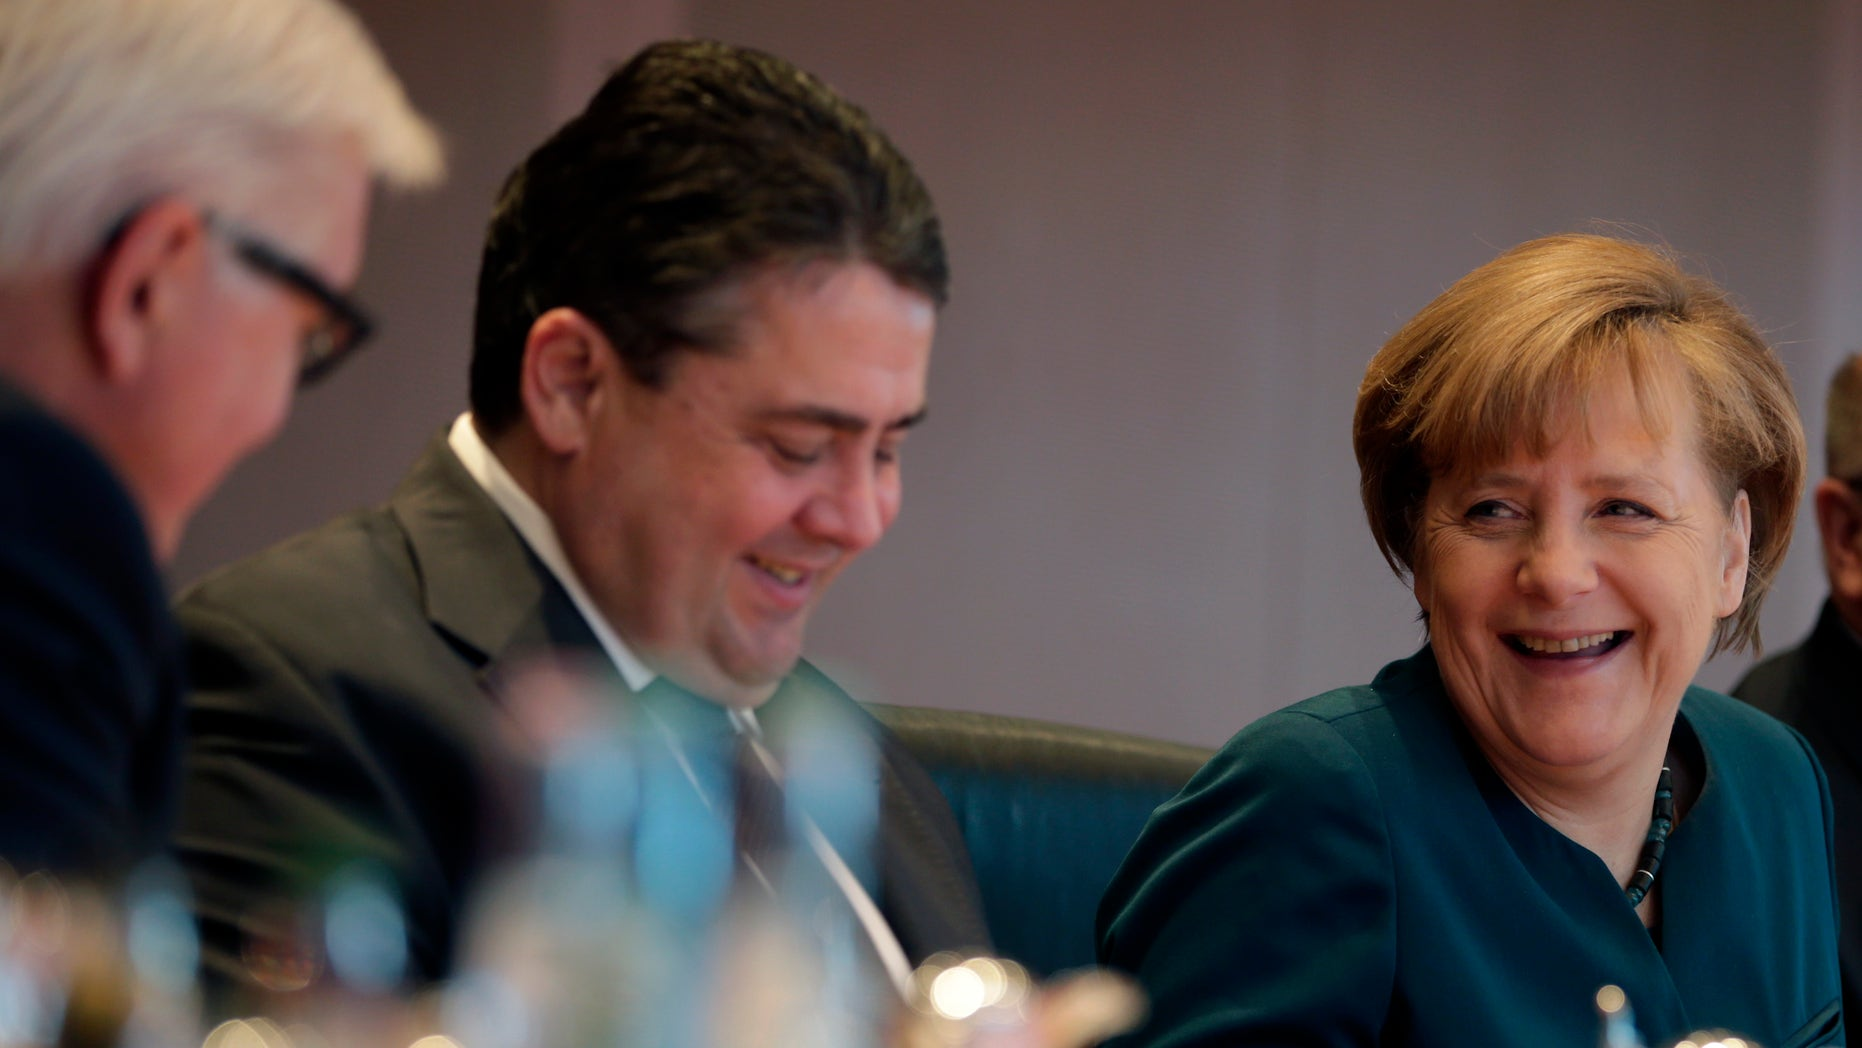 German Chancellor Angela Merkel, German Economy and Energy Minister Sigmar Gabriel and German Foreign Minister Frank-Walter Steinmeier, from right, chat at the beginning of the weekly cabinet meeting at the chancellery in Berlin, Germany, Wednesday, Jan. 15, 2014. (AP Photo/Michael Sohn)